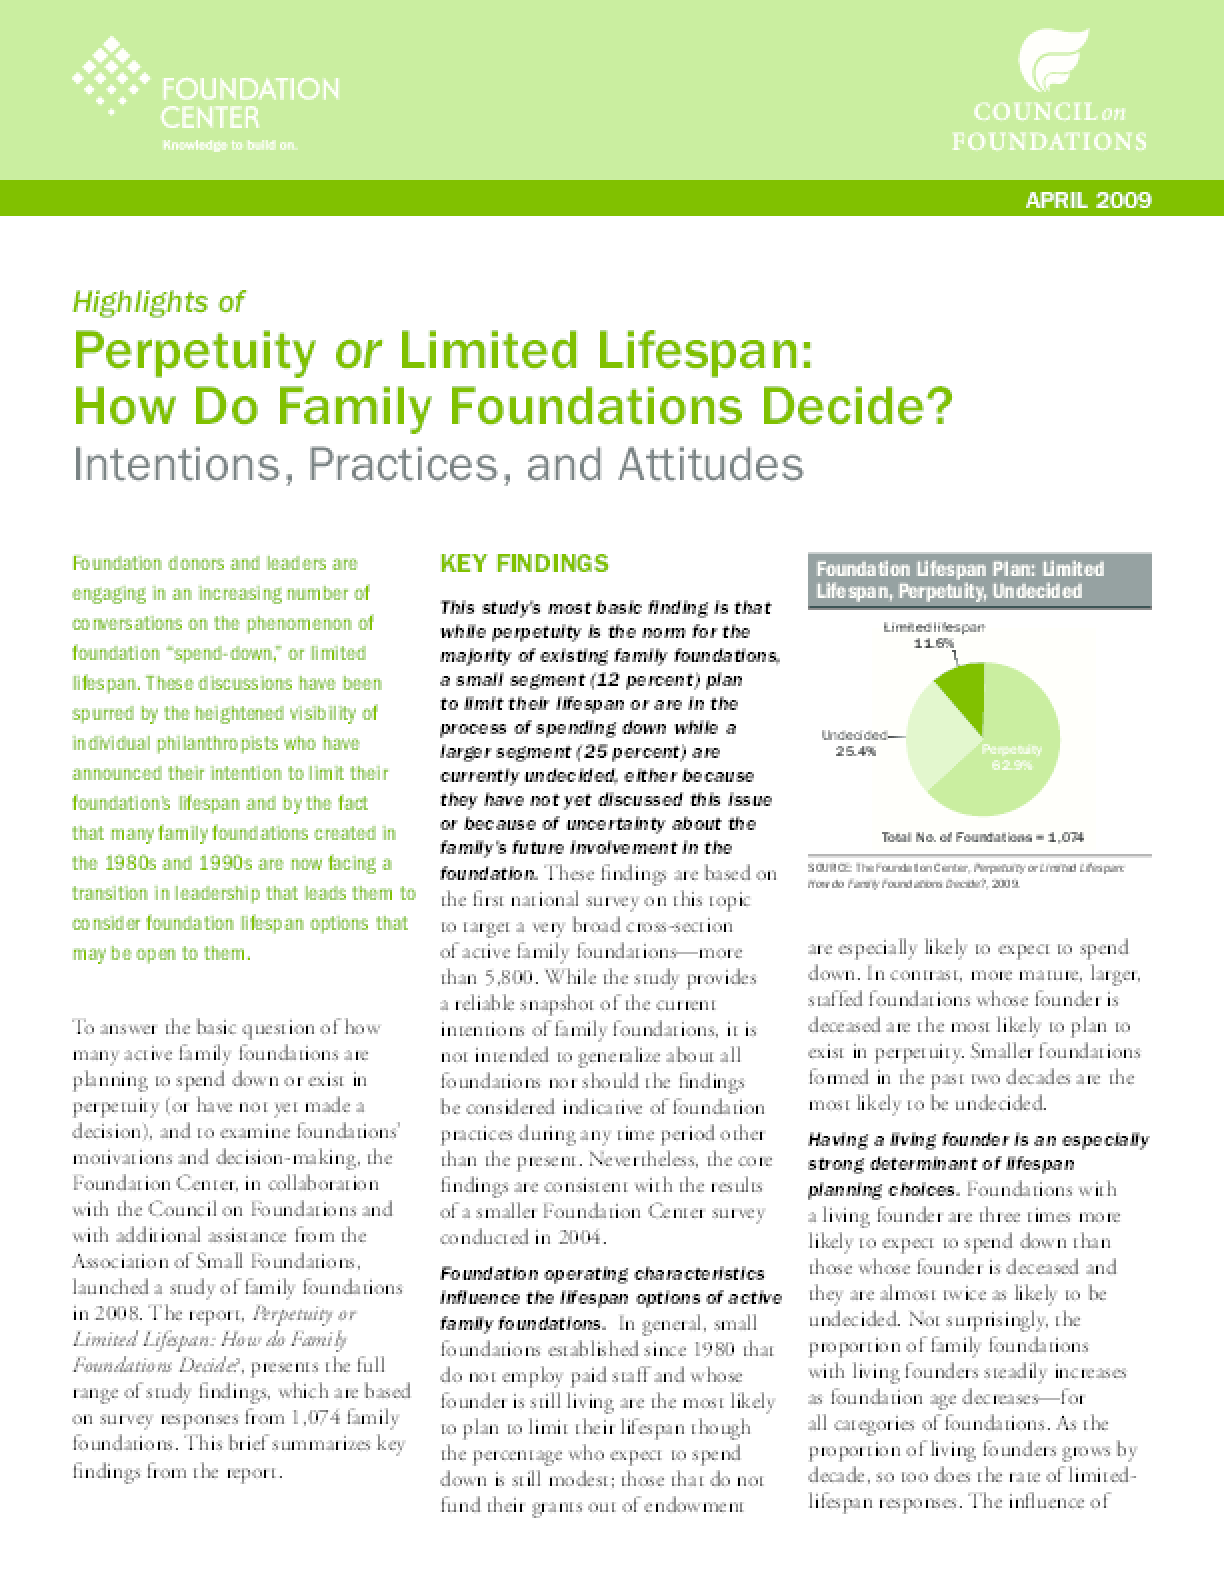 Perpetuity or Limited Lifespan: How Do Family Foundations Decide? (Highlights)